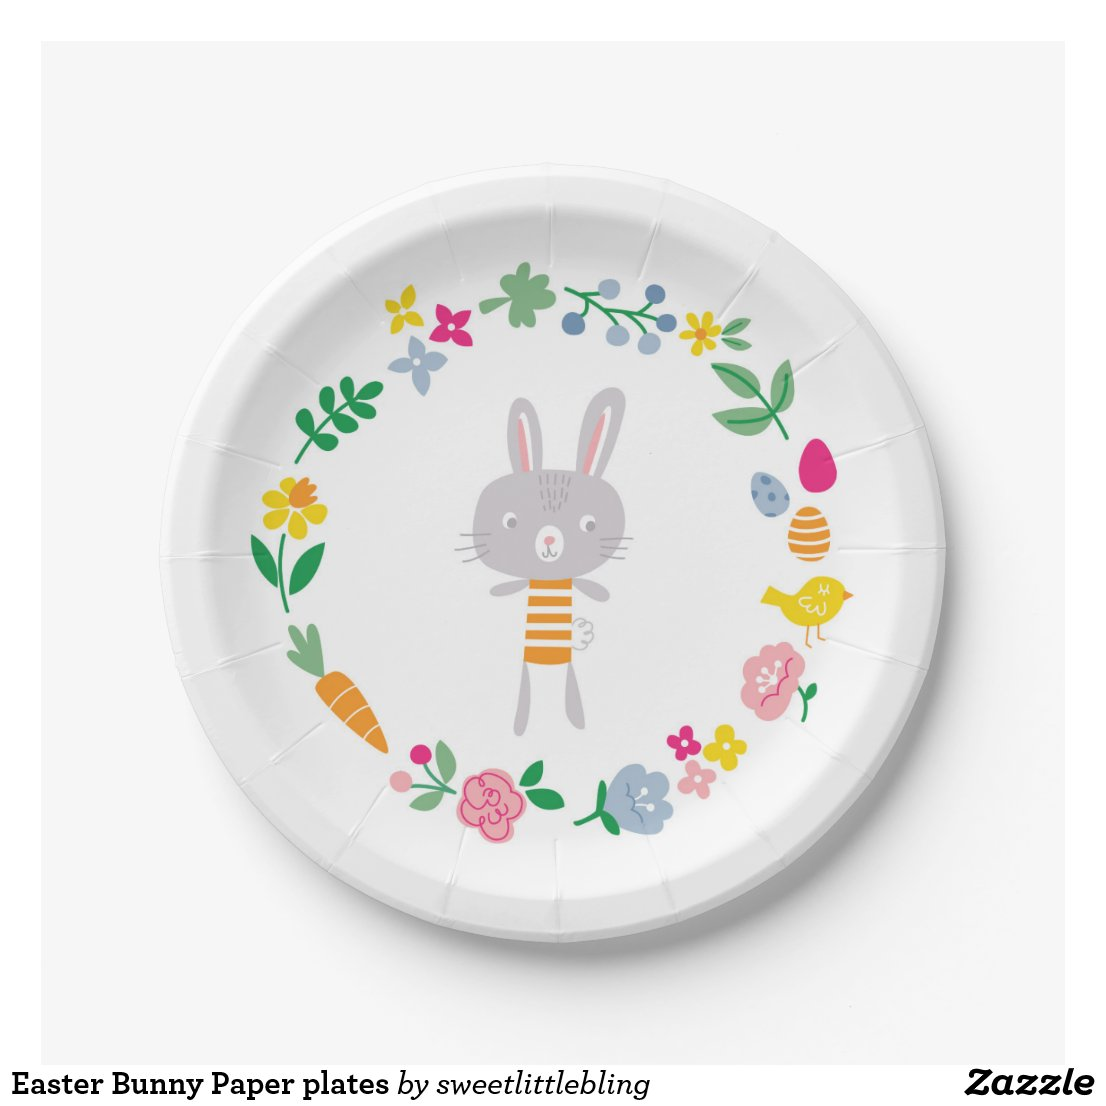 Easter Bunny Paper plates